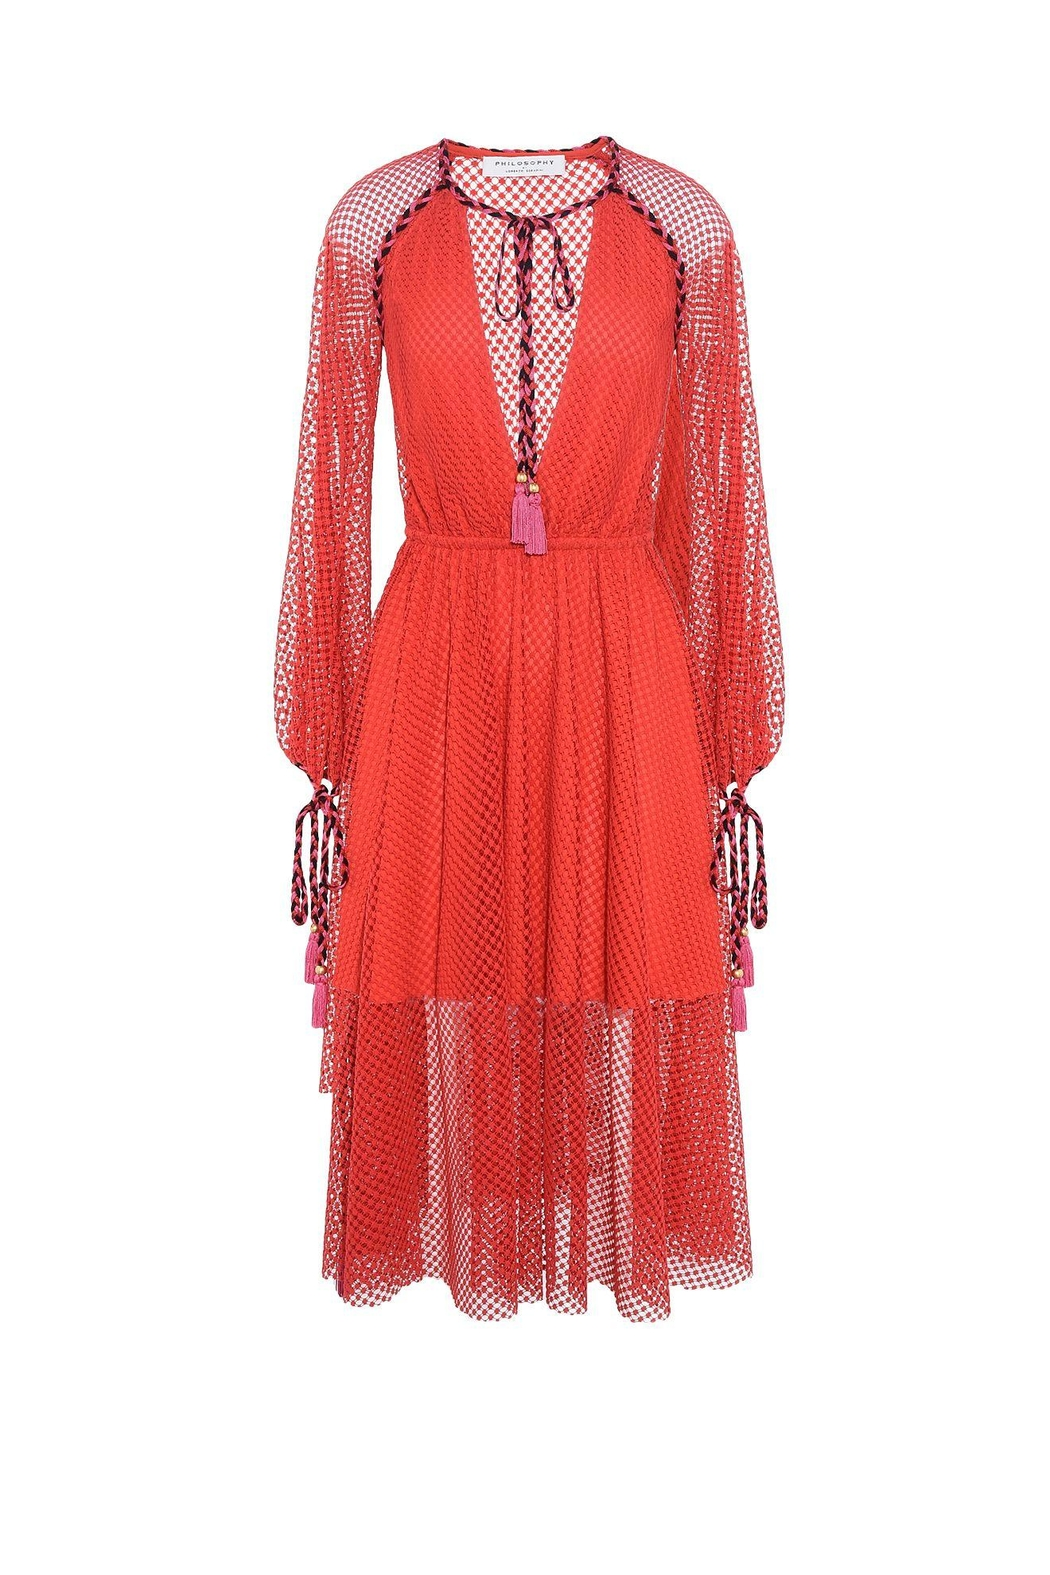 Philosophy di Lorenzo Serafini Red Lace Dress - Side Cropped Image